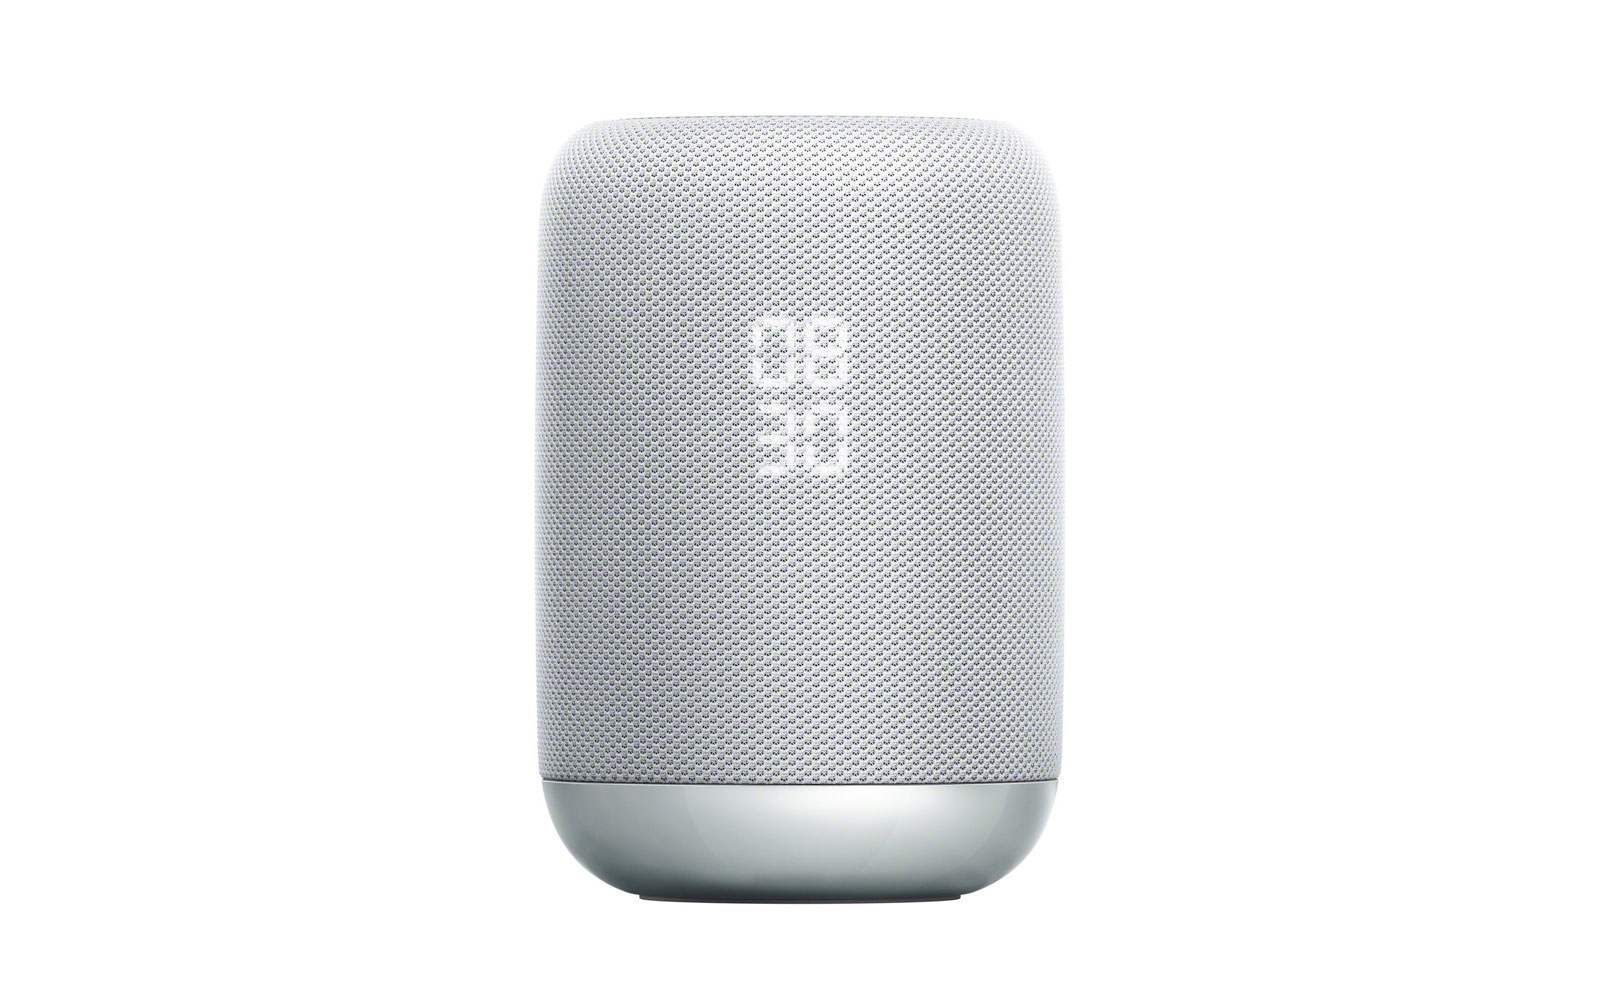 Sony Intros Google Assistant-Powered Speaker, Costs $199